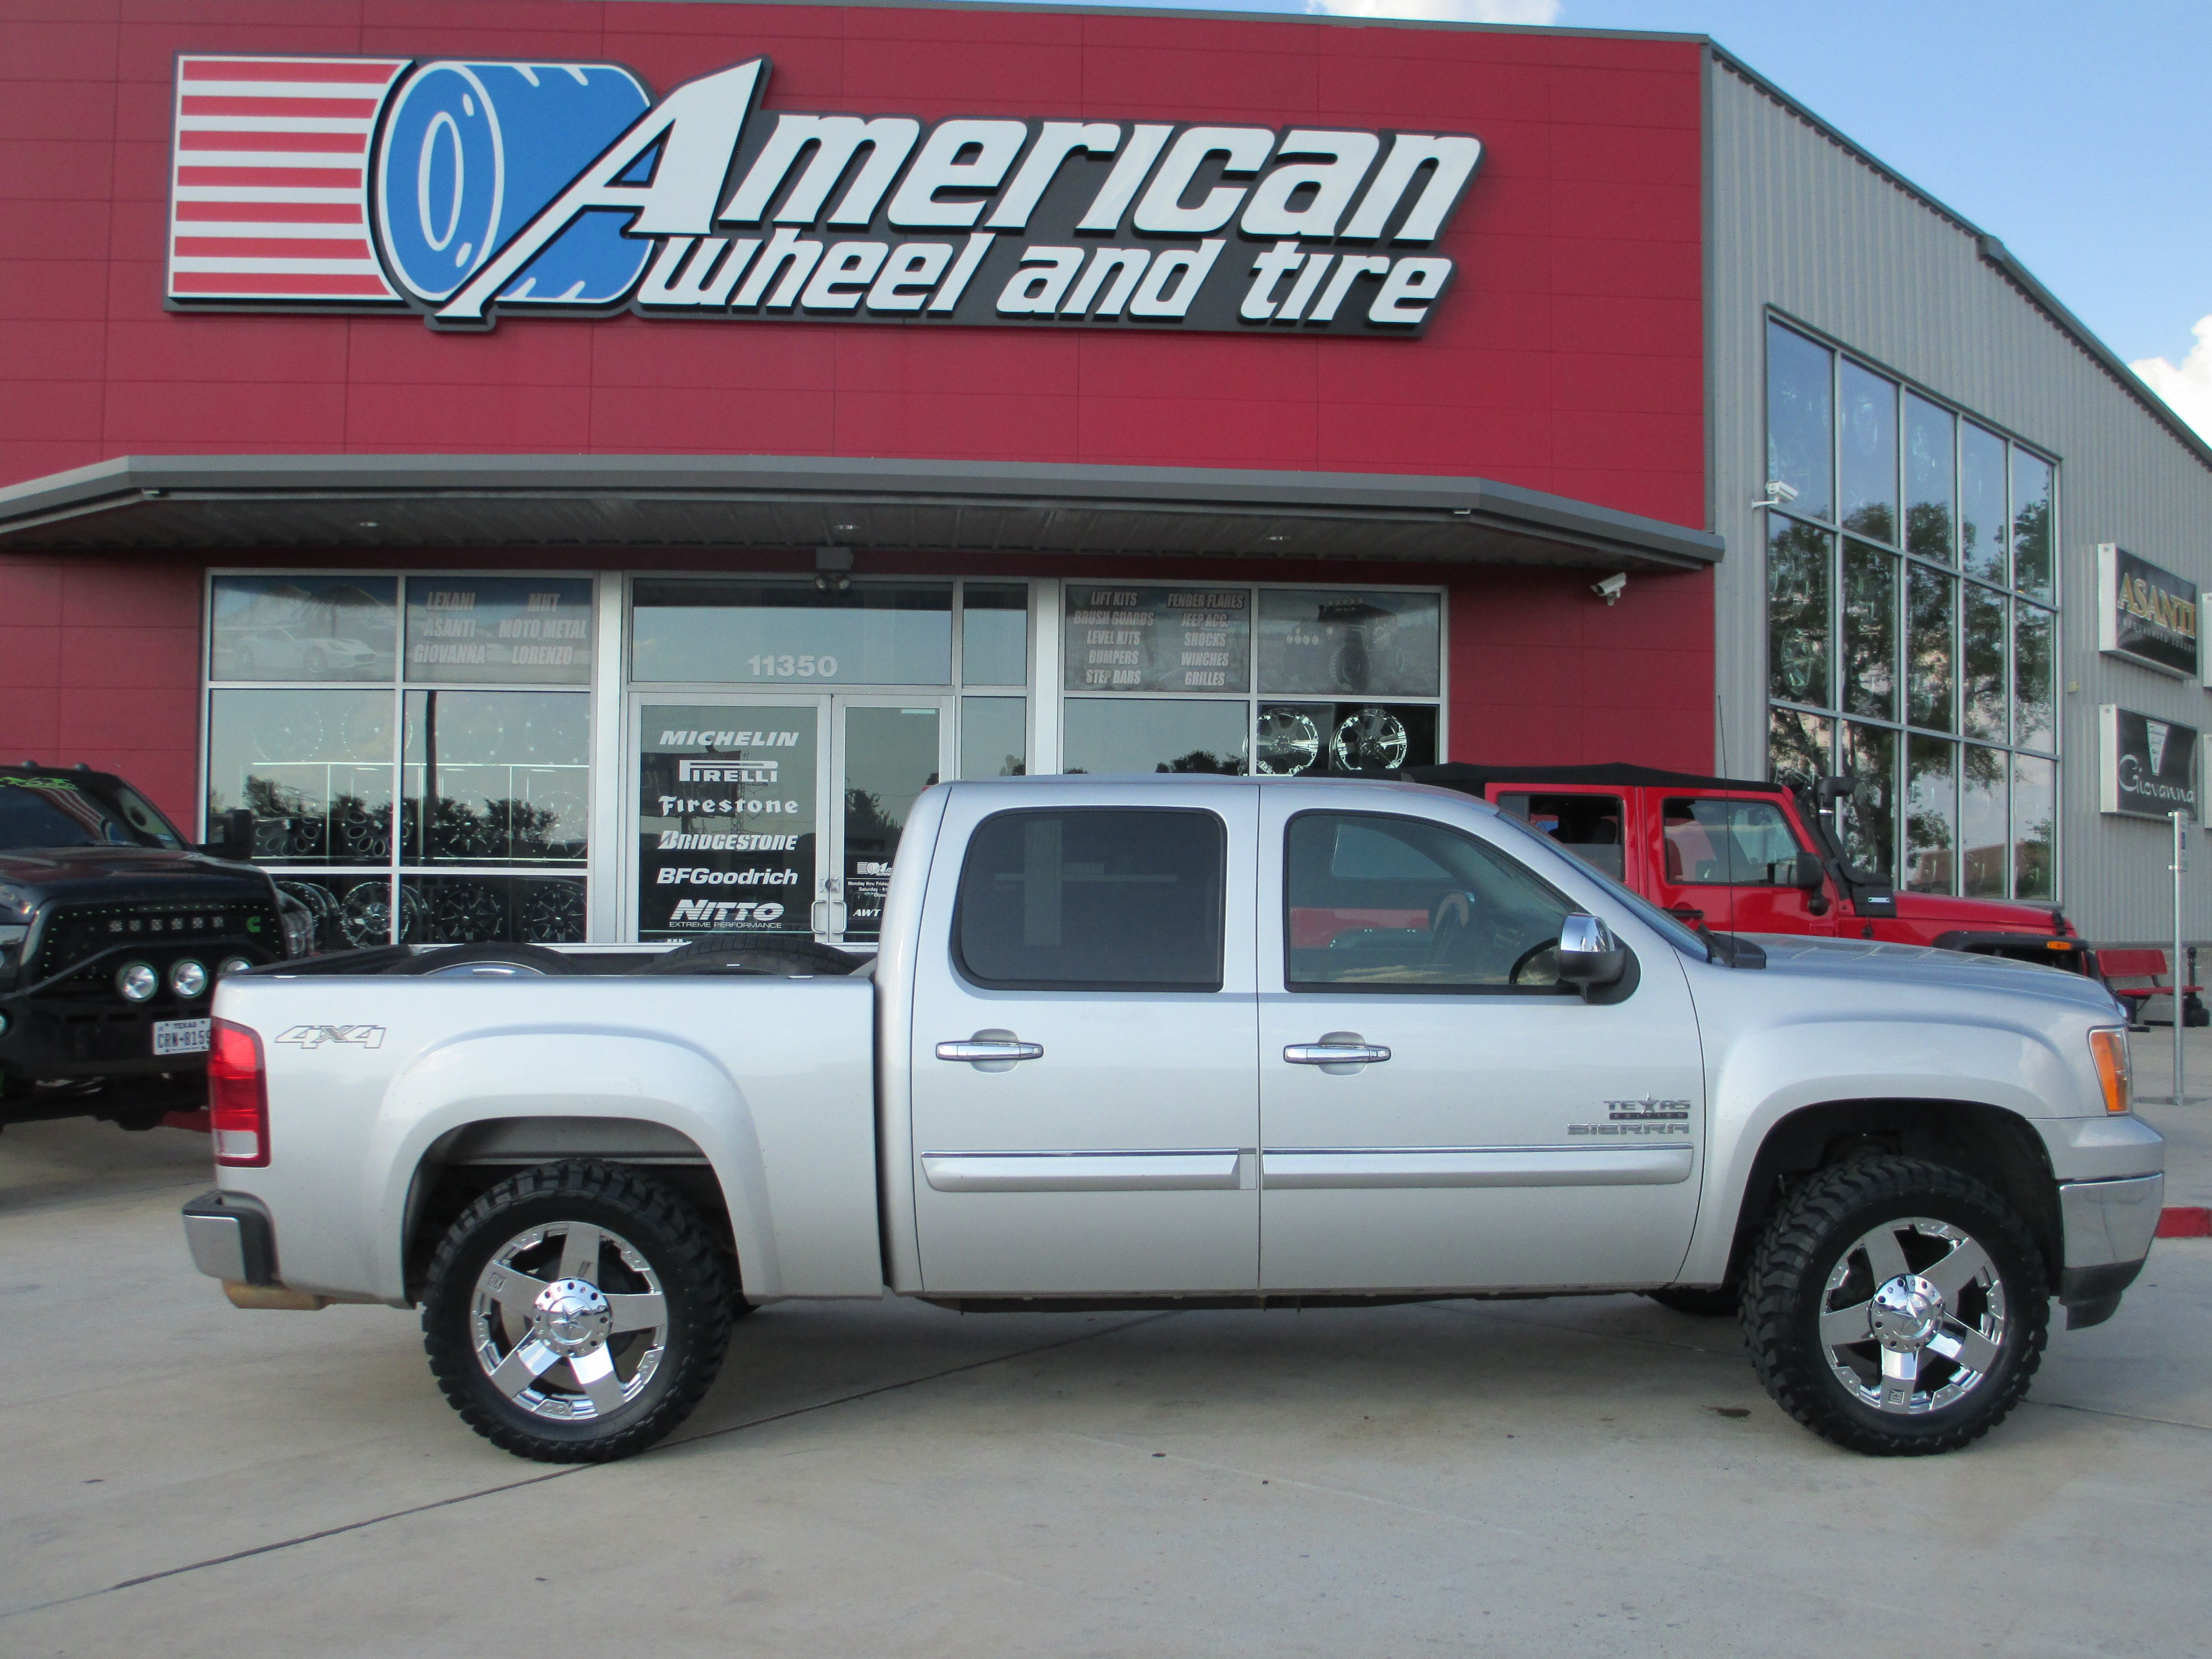 our powerful detail denali ever sierra most duramax news pages us en new home sep diesel media houston content gmc all is